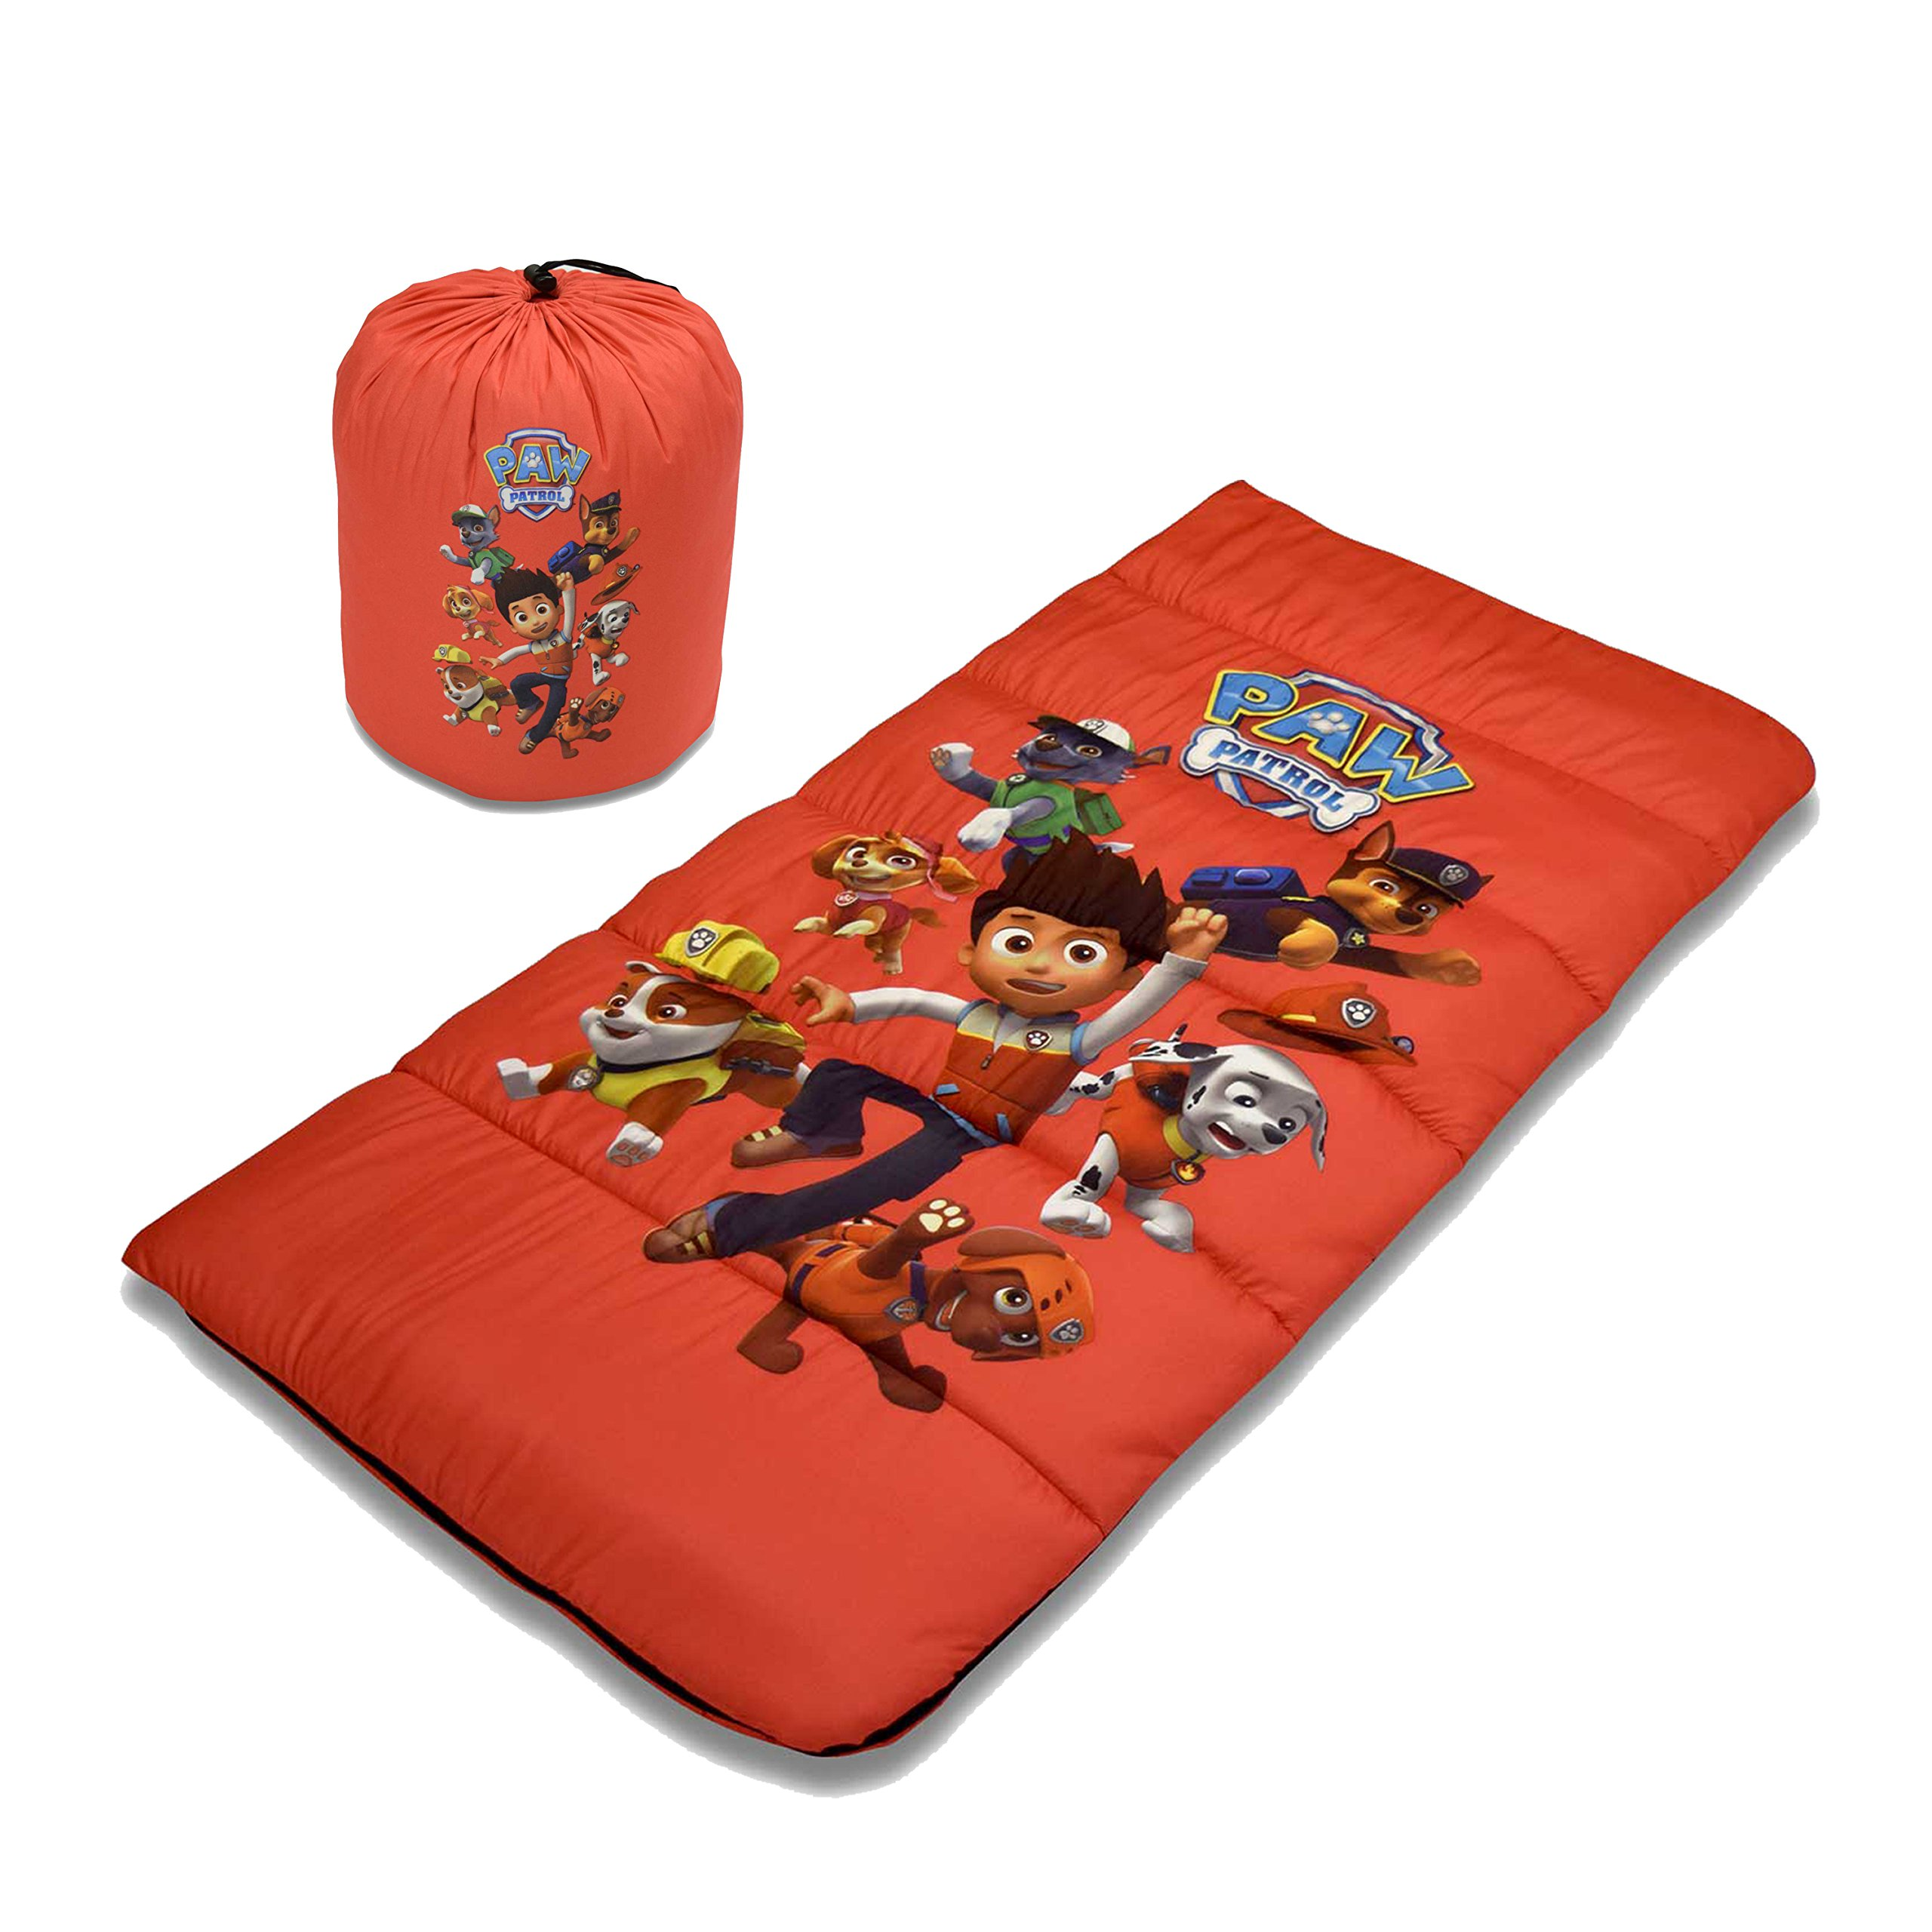 Paw Patrol Sleeping Bag with Storage Bag, Red